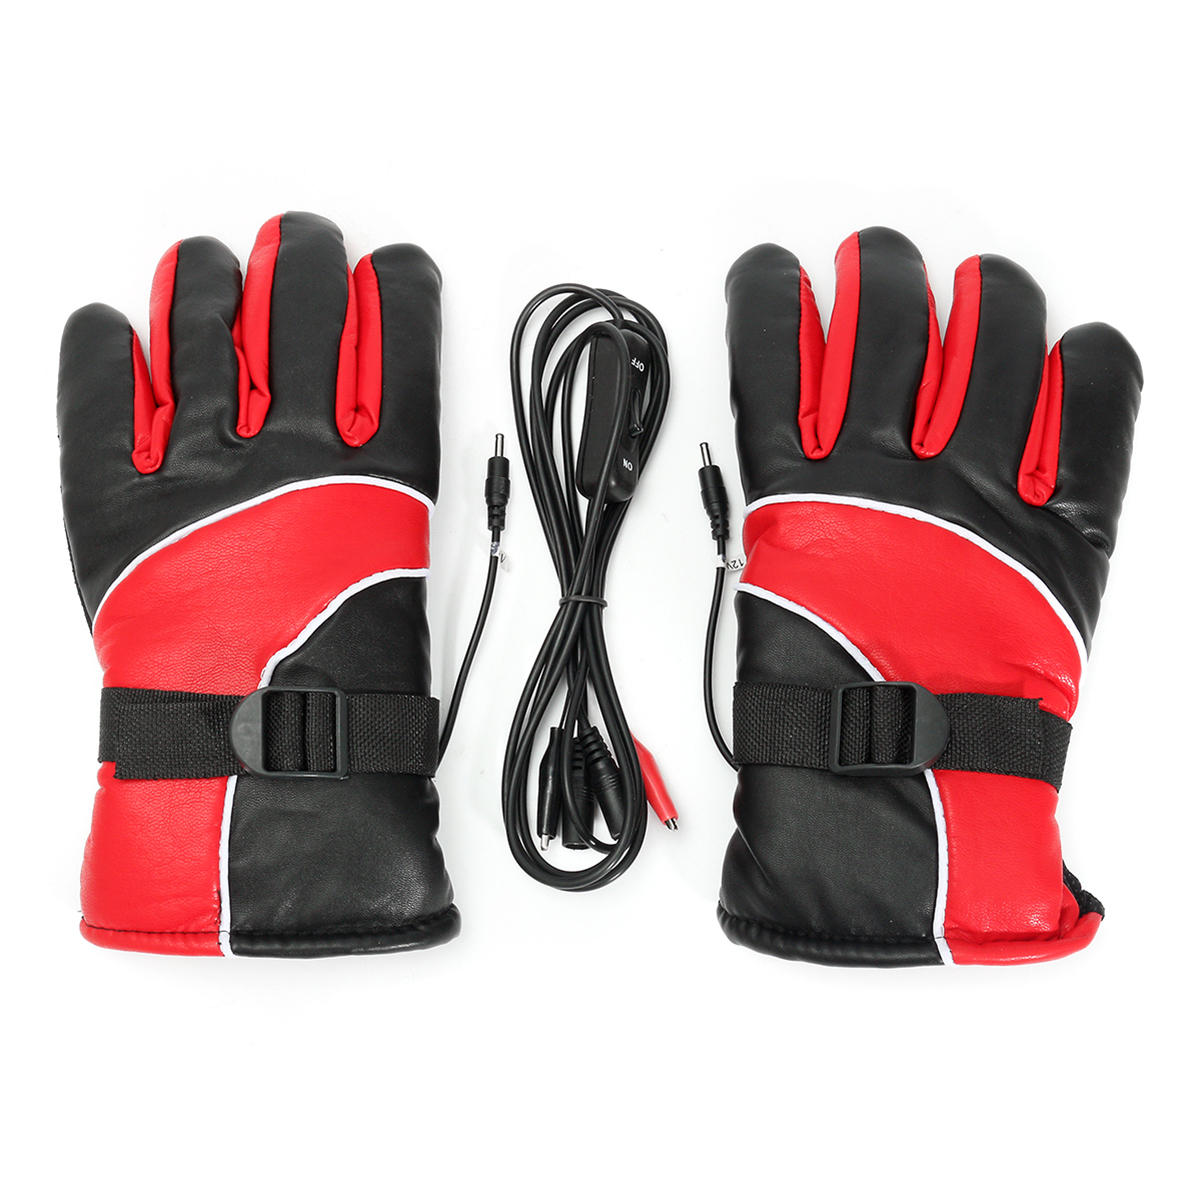 12V Warm Electric Aquated Warmer Winter Gloves Motorcycle Scooter E-bike